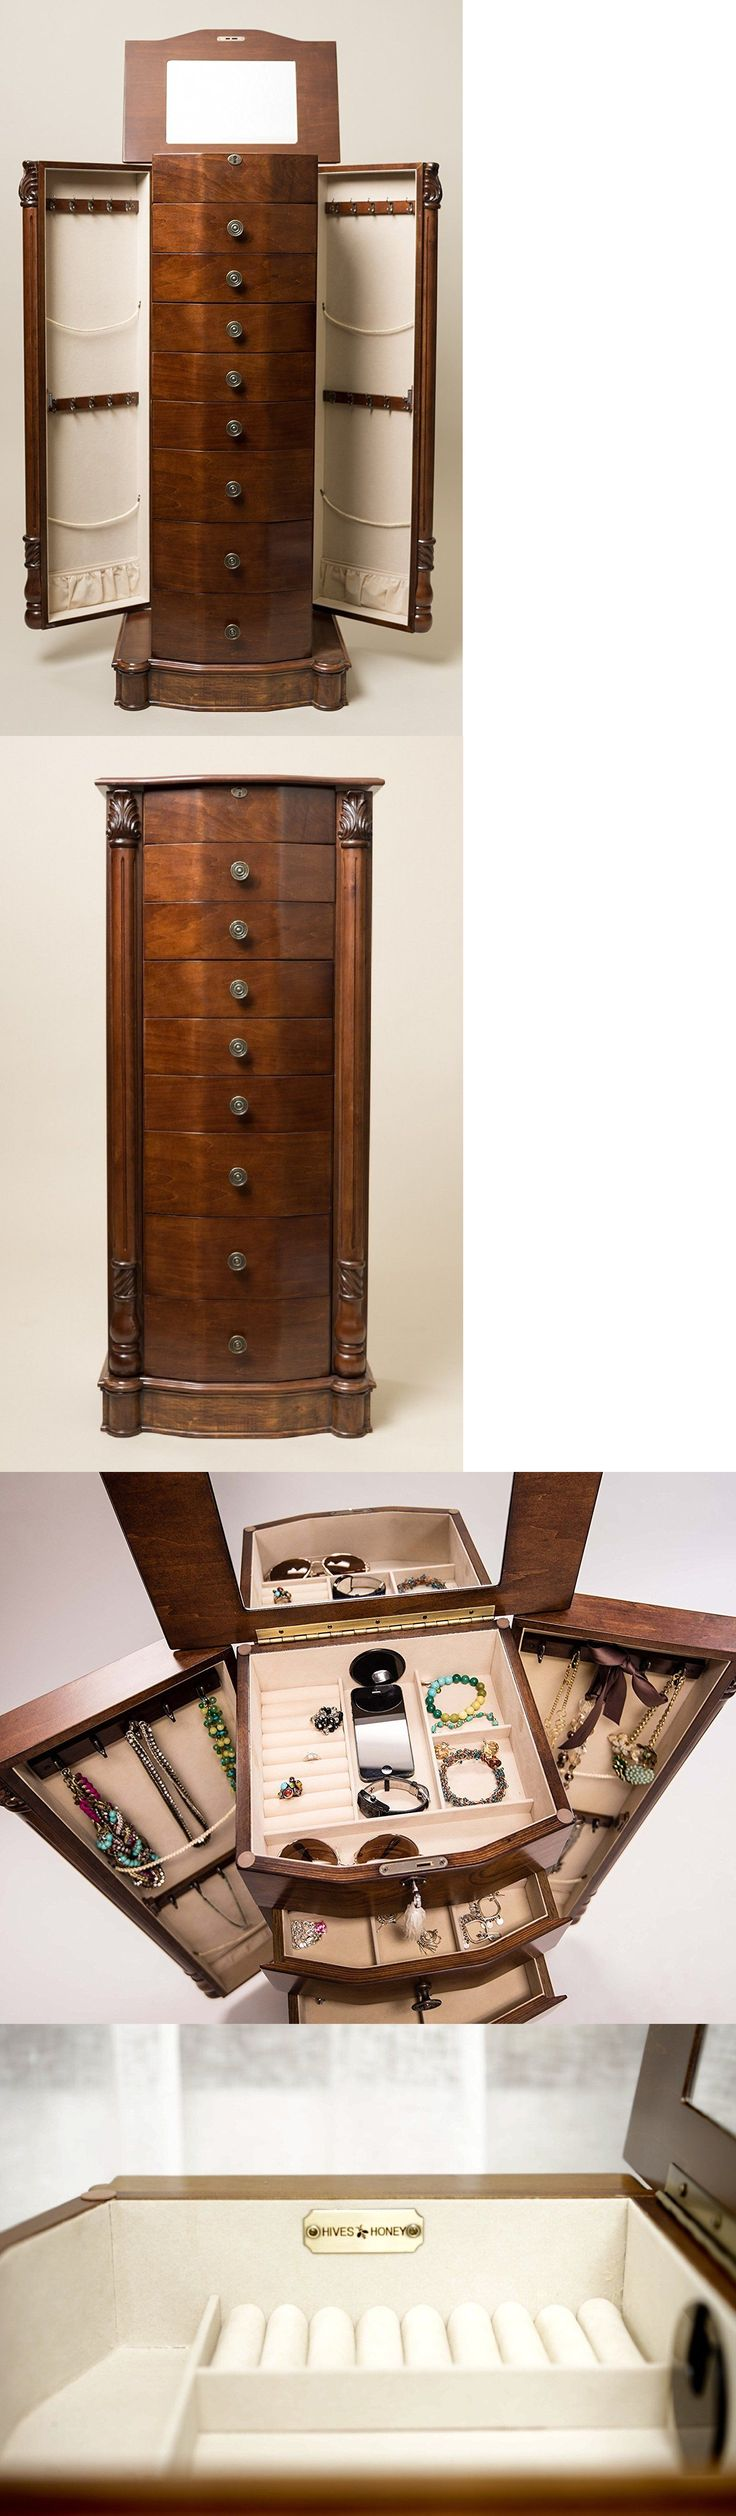 Jewelry Boxes 3820: Tall Jewelry Armoire Chest With Mirror Brown Wood Storage Cabinet Stand Box BUY IT NOW ONLY: $241.64